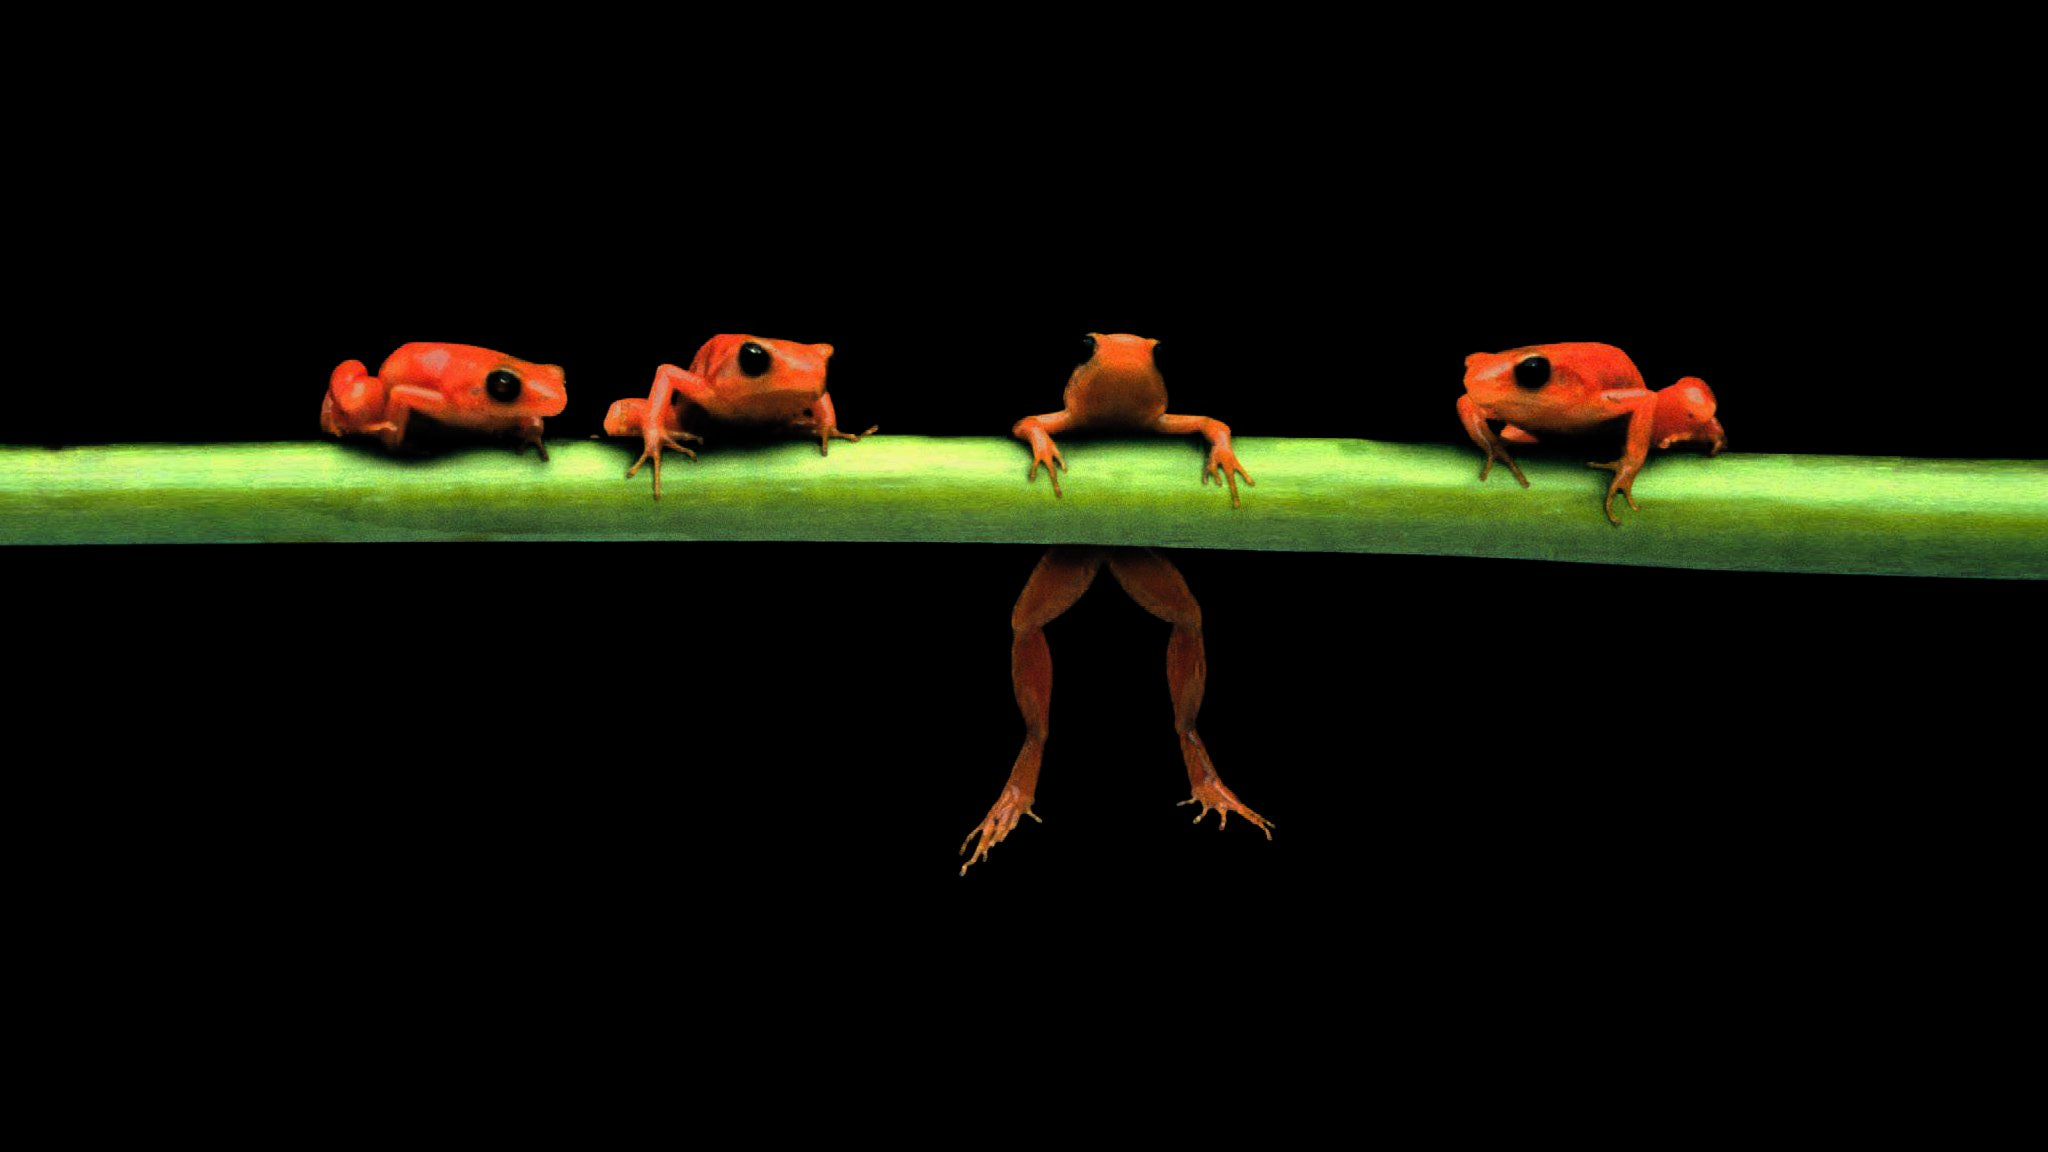 hanging Frogs Black Background Amphibians Wallpapers HD 2048x1152